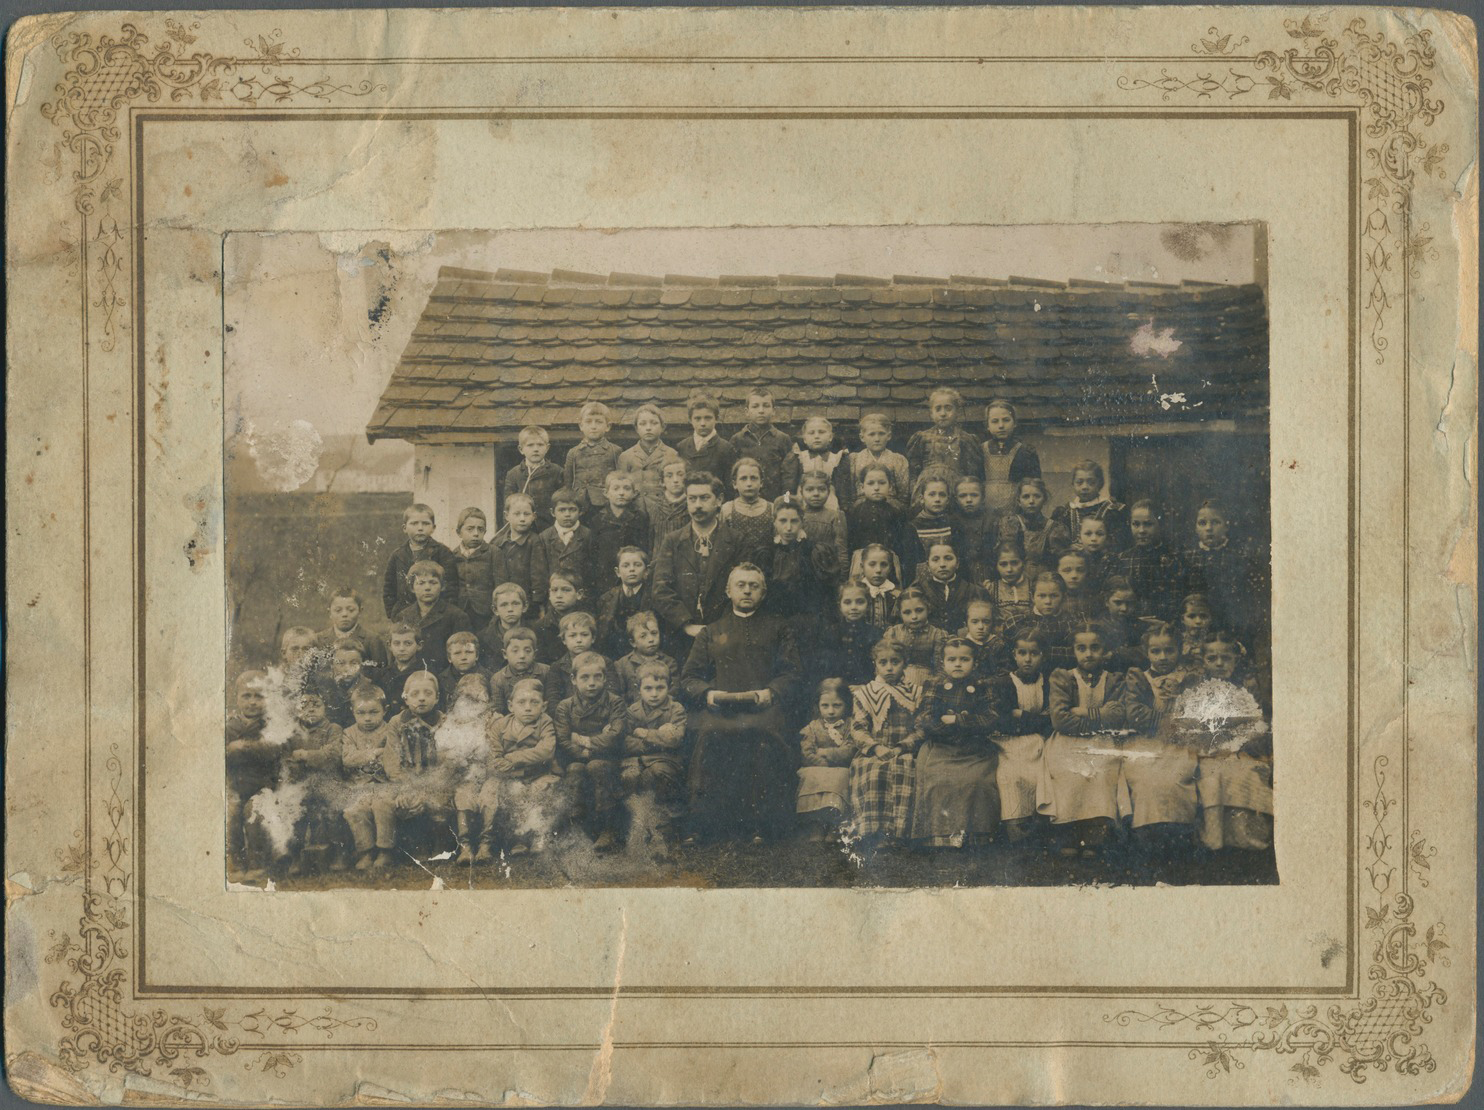 Adolf Hitler at the age of 6 (4th from the left on the top row) with his classmates in Fischlham, Austria-Hungary